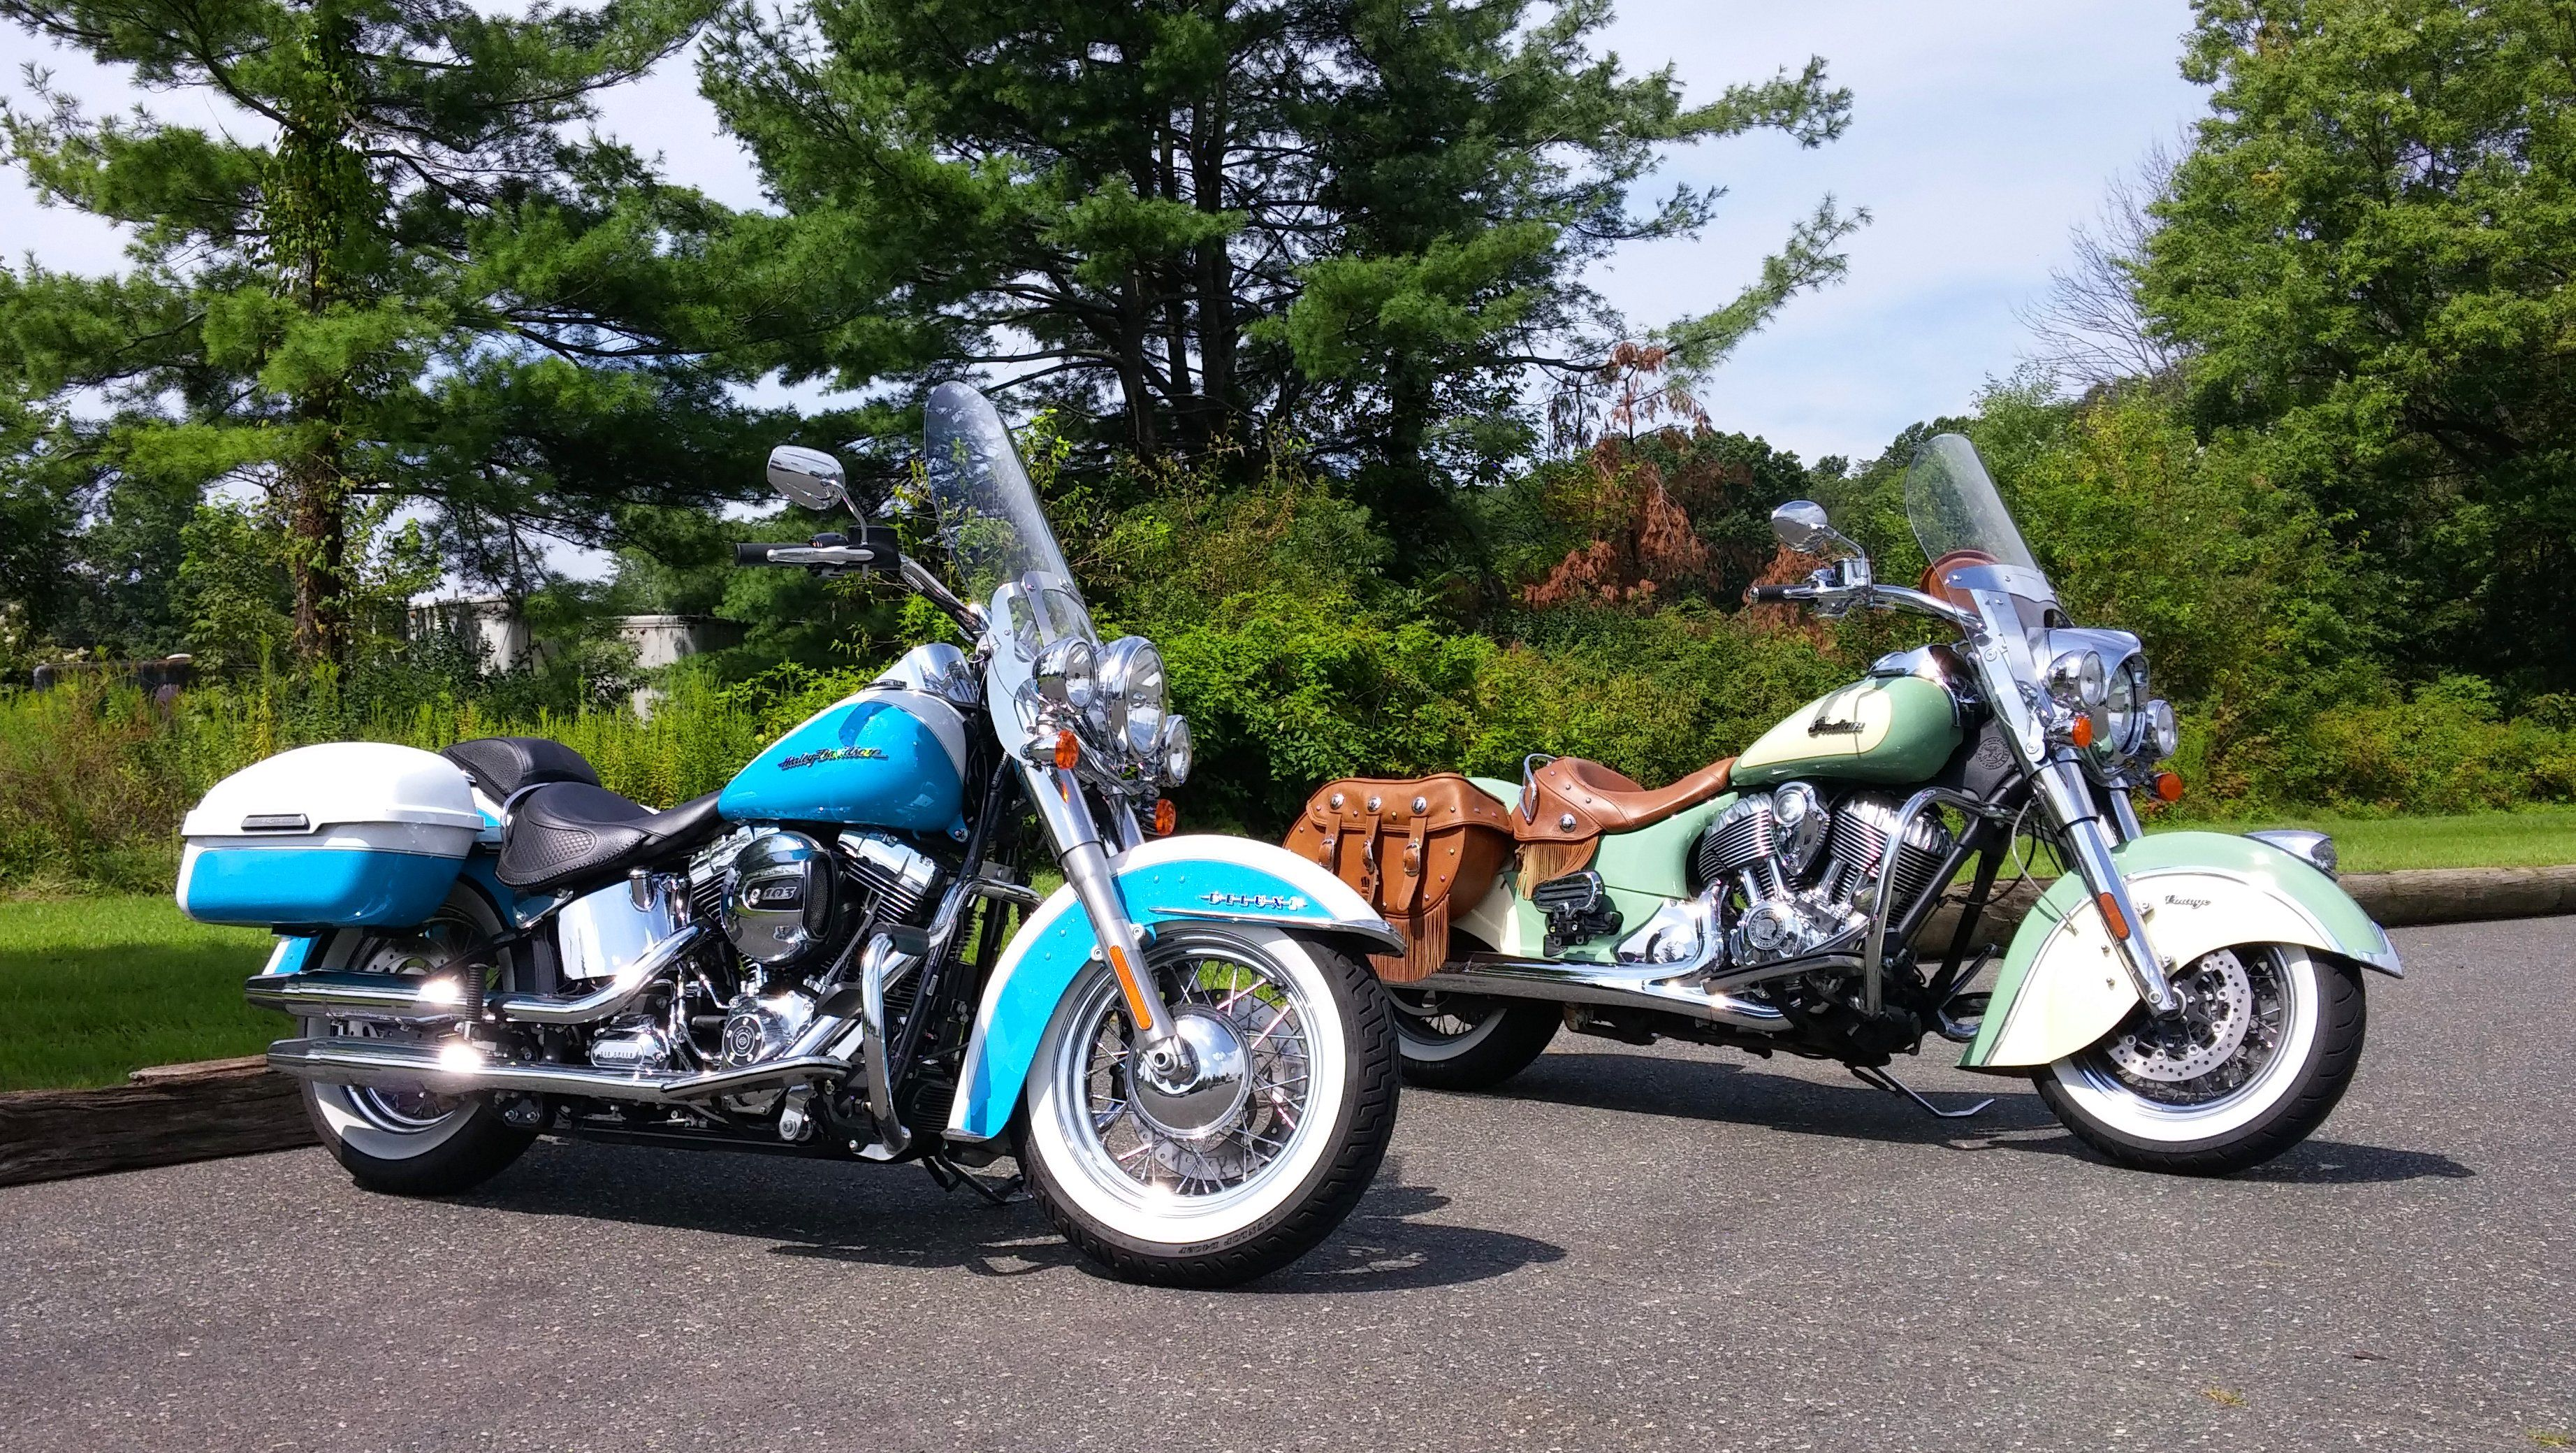 Indian Chief Vintage With Its Garage Mate A Harley Softail Deluxe With Hard Street Saddle Bags Motorrad Autos Trucks